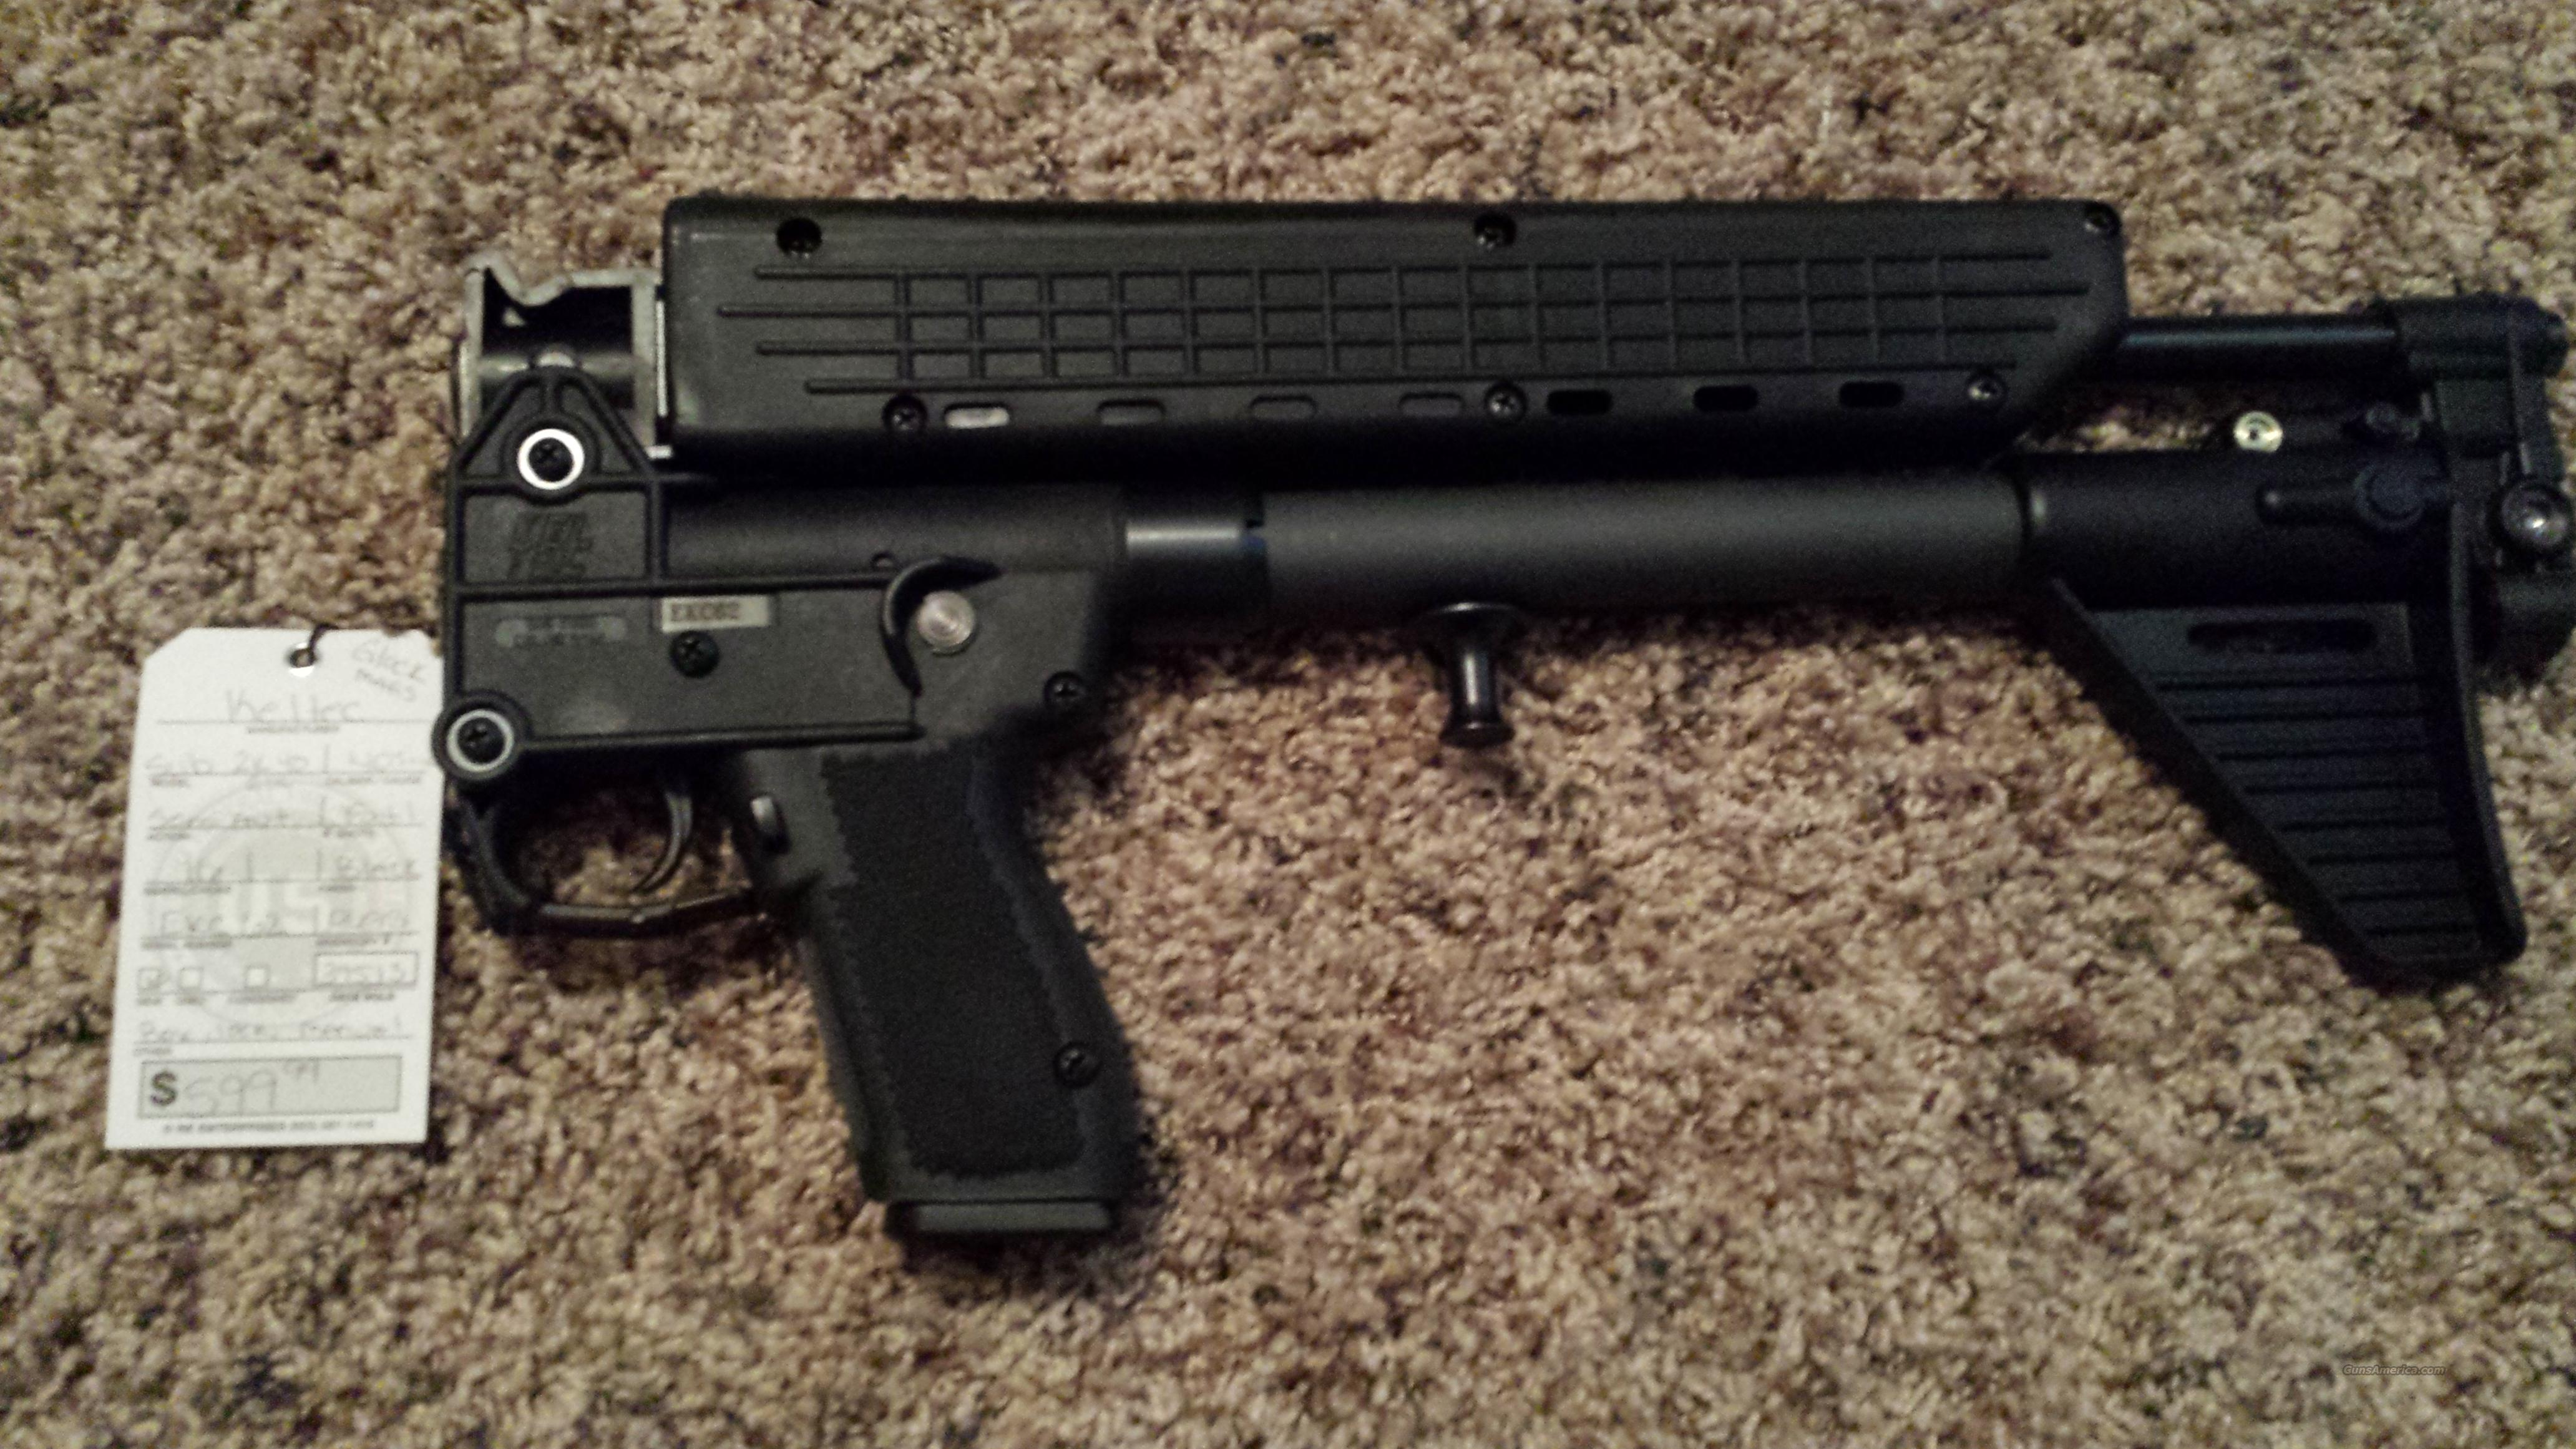 KEL TEC SUB 2K 2000 9MM 9 GLOCK 17 BLACK 17RD  Guns > Rifles > Kel-Tec Rifles